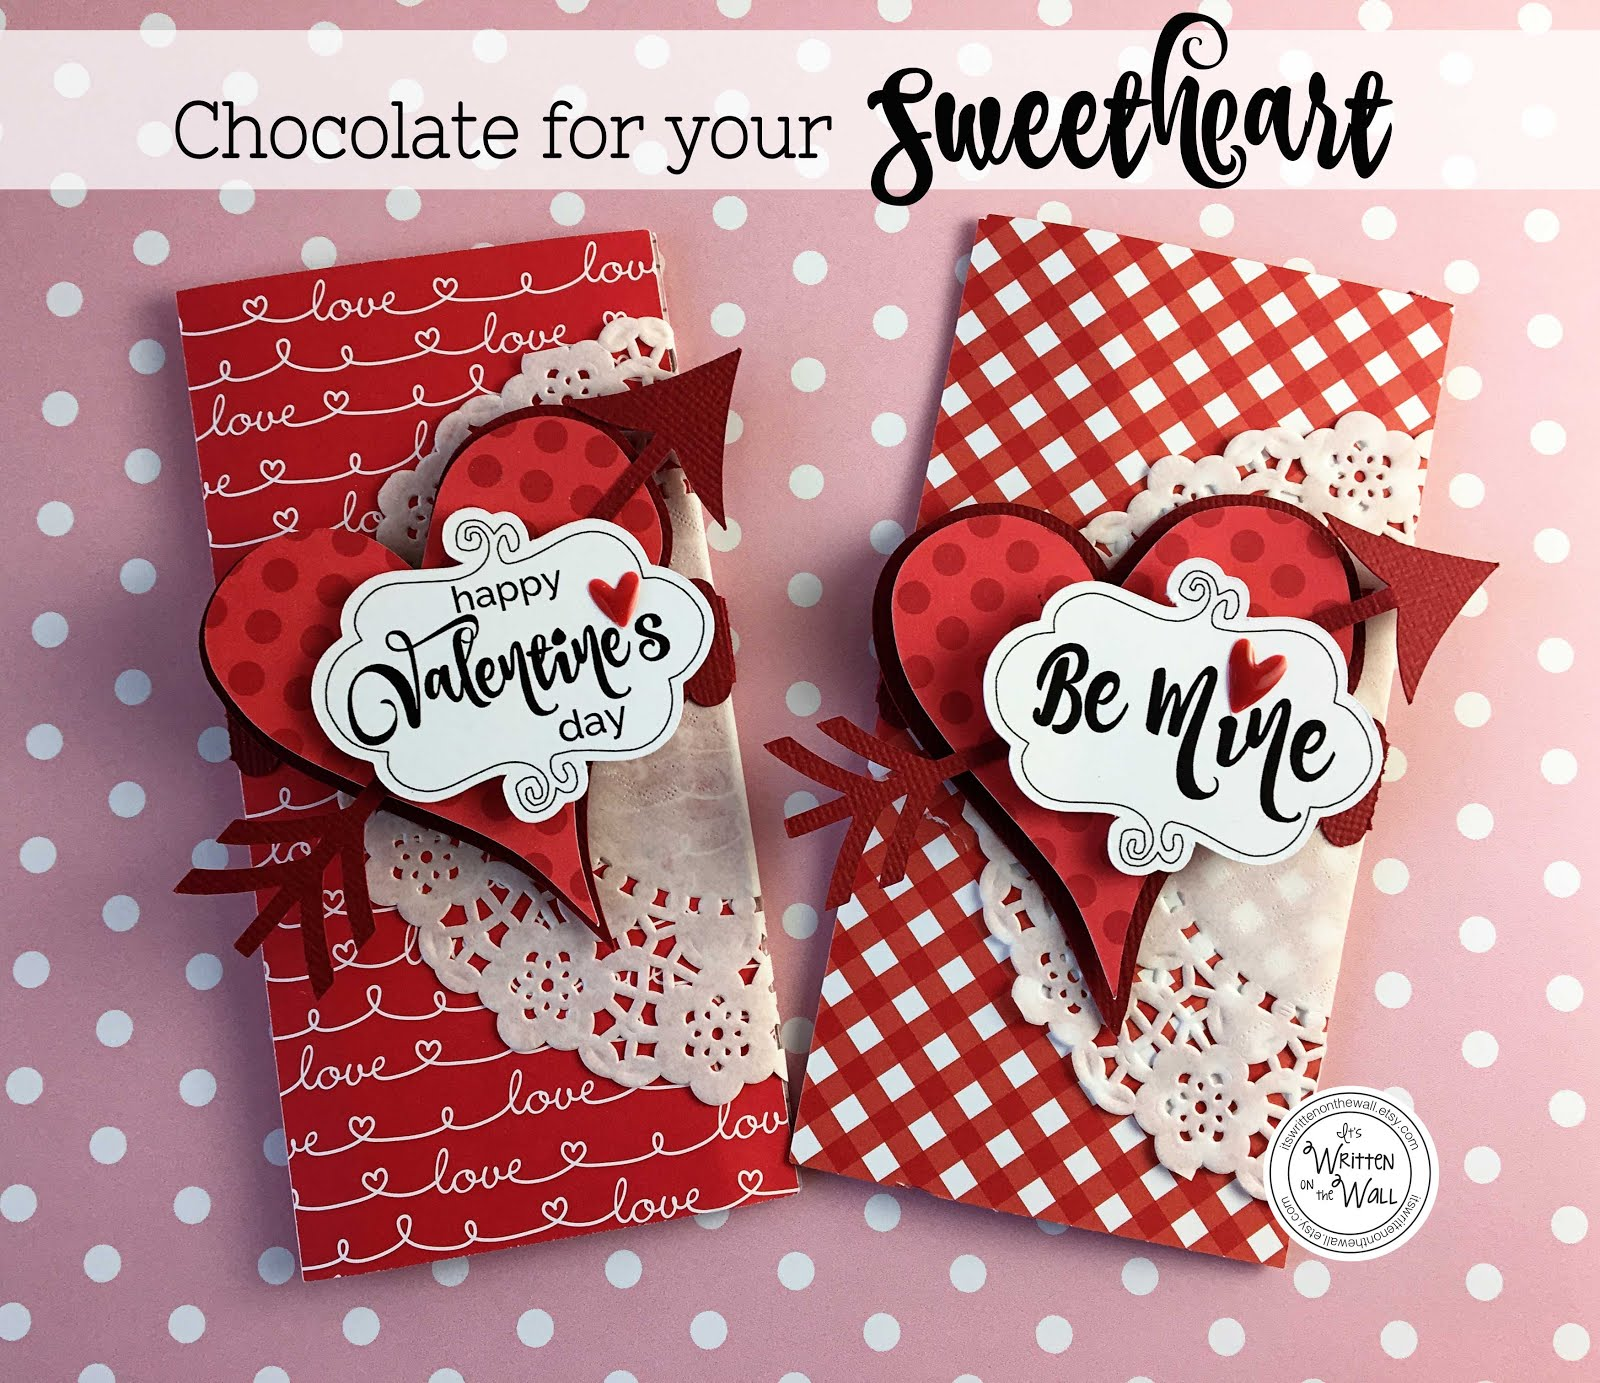 Chocolate for your Sweetheart